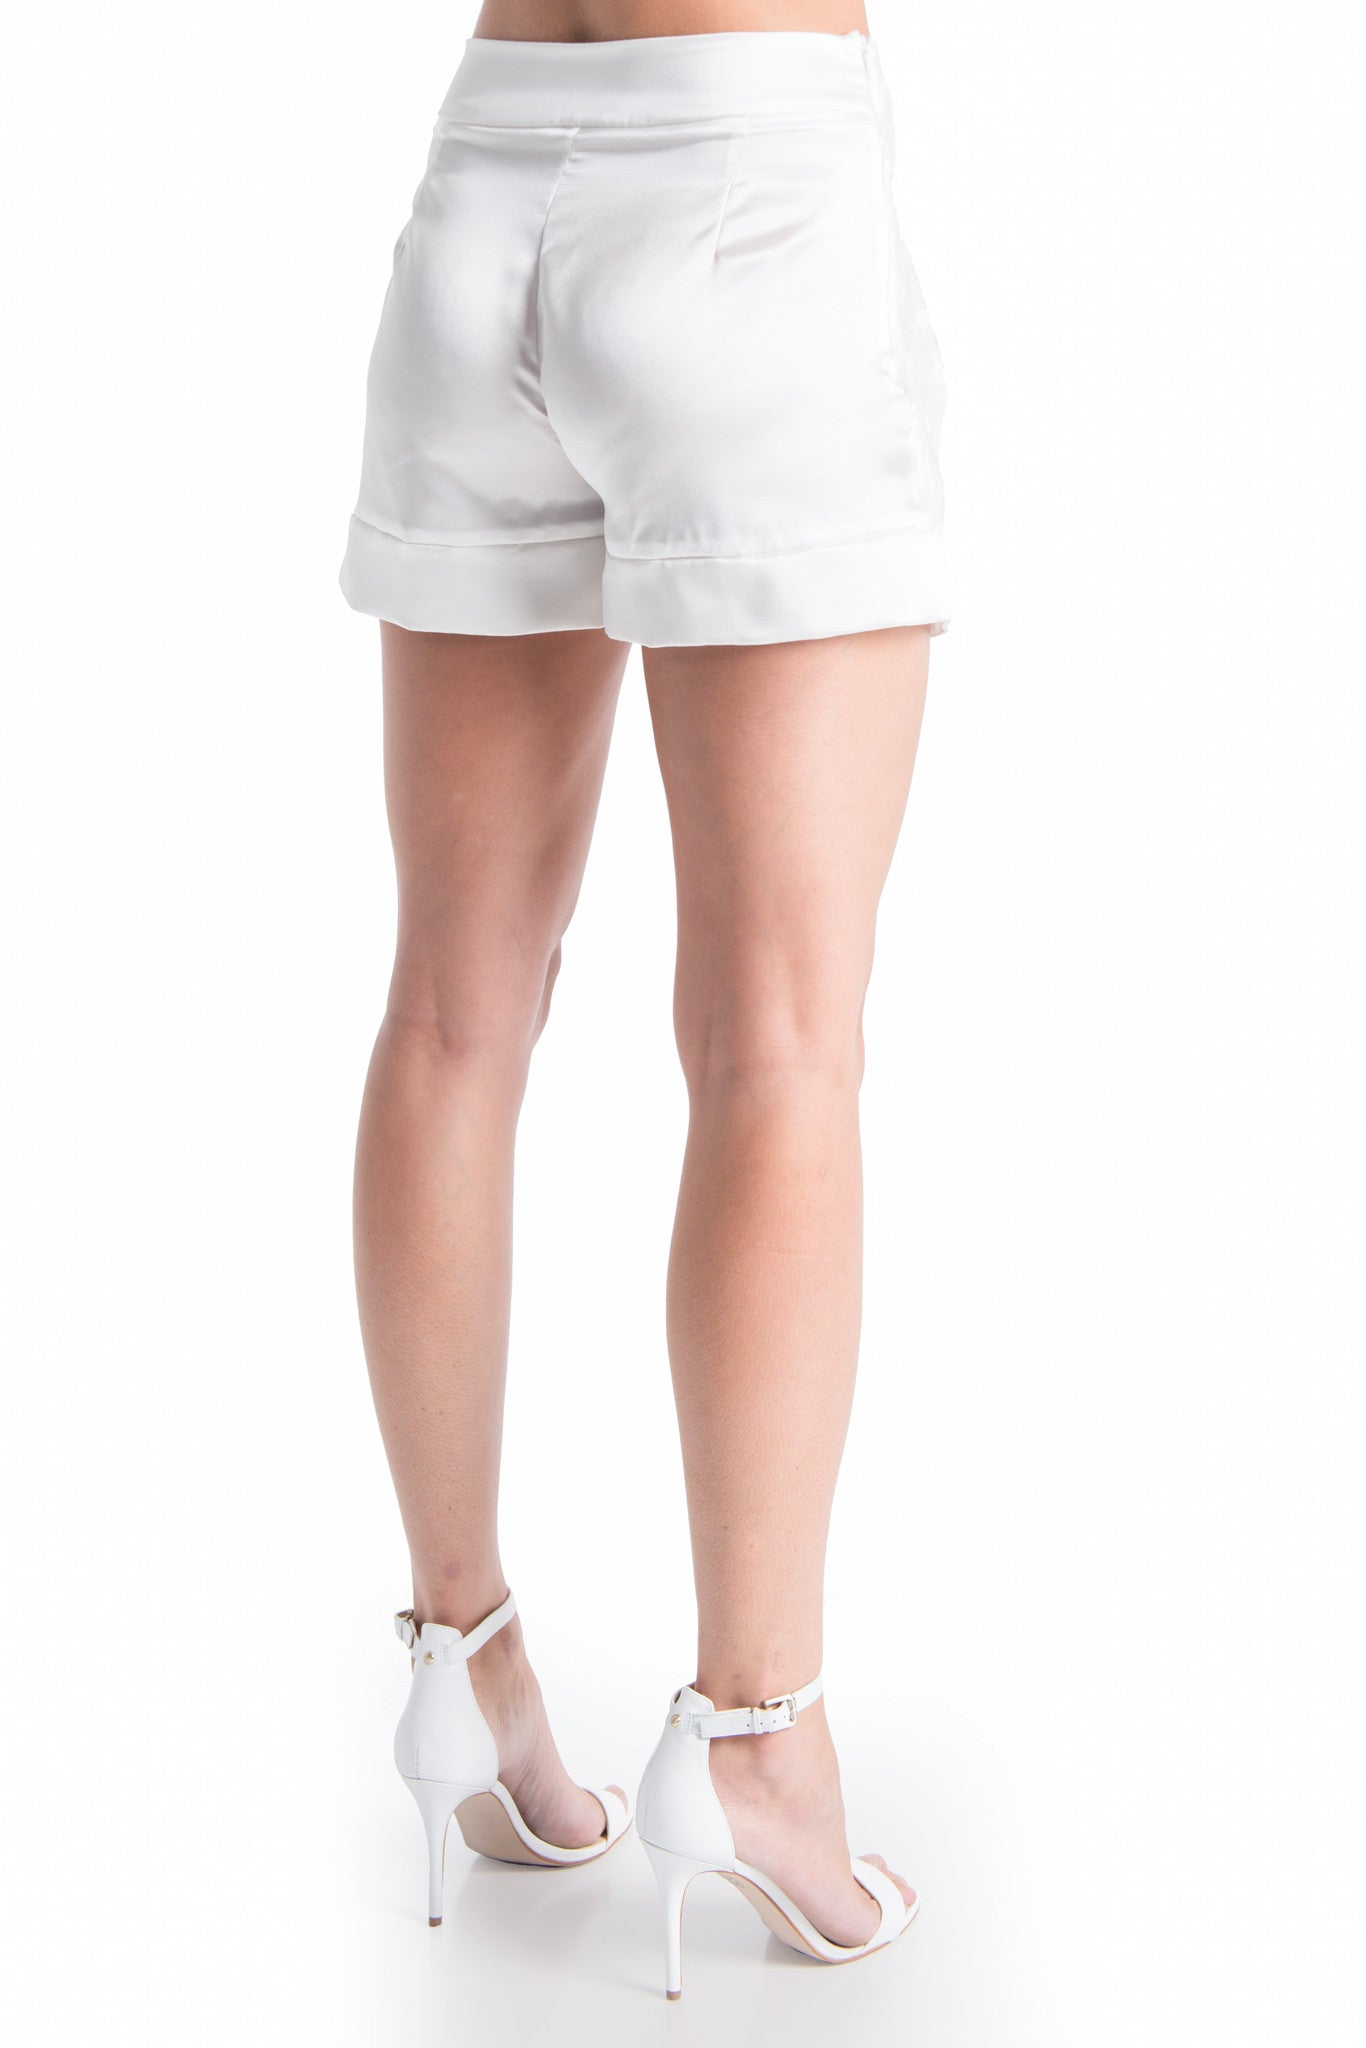 OLIVIA Lace Satin Shorts - NATURAL WHT | HAUS OF SONG